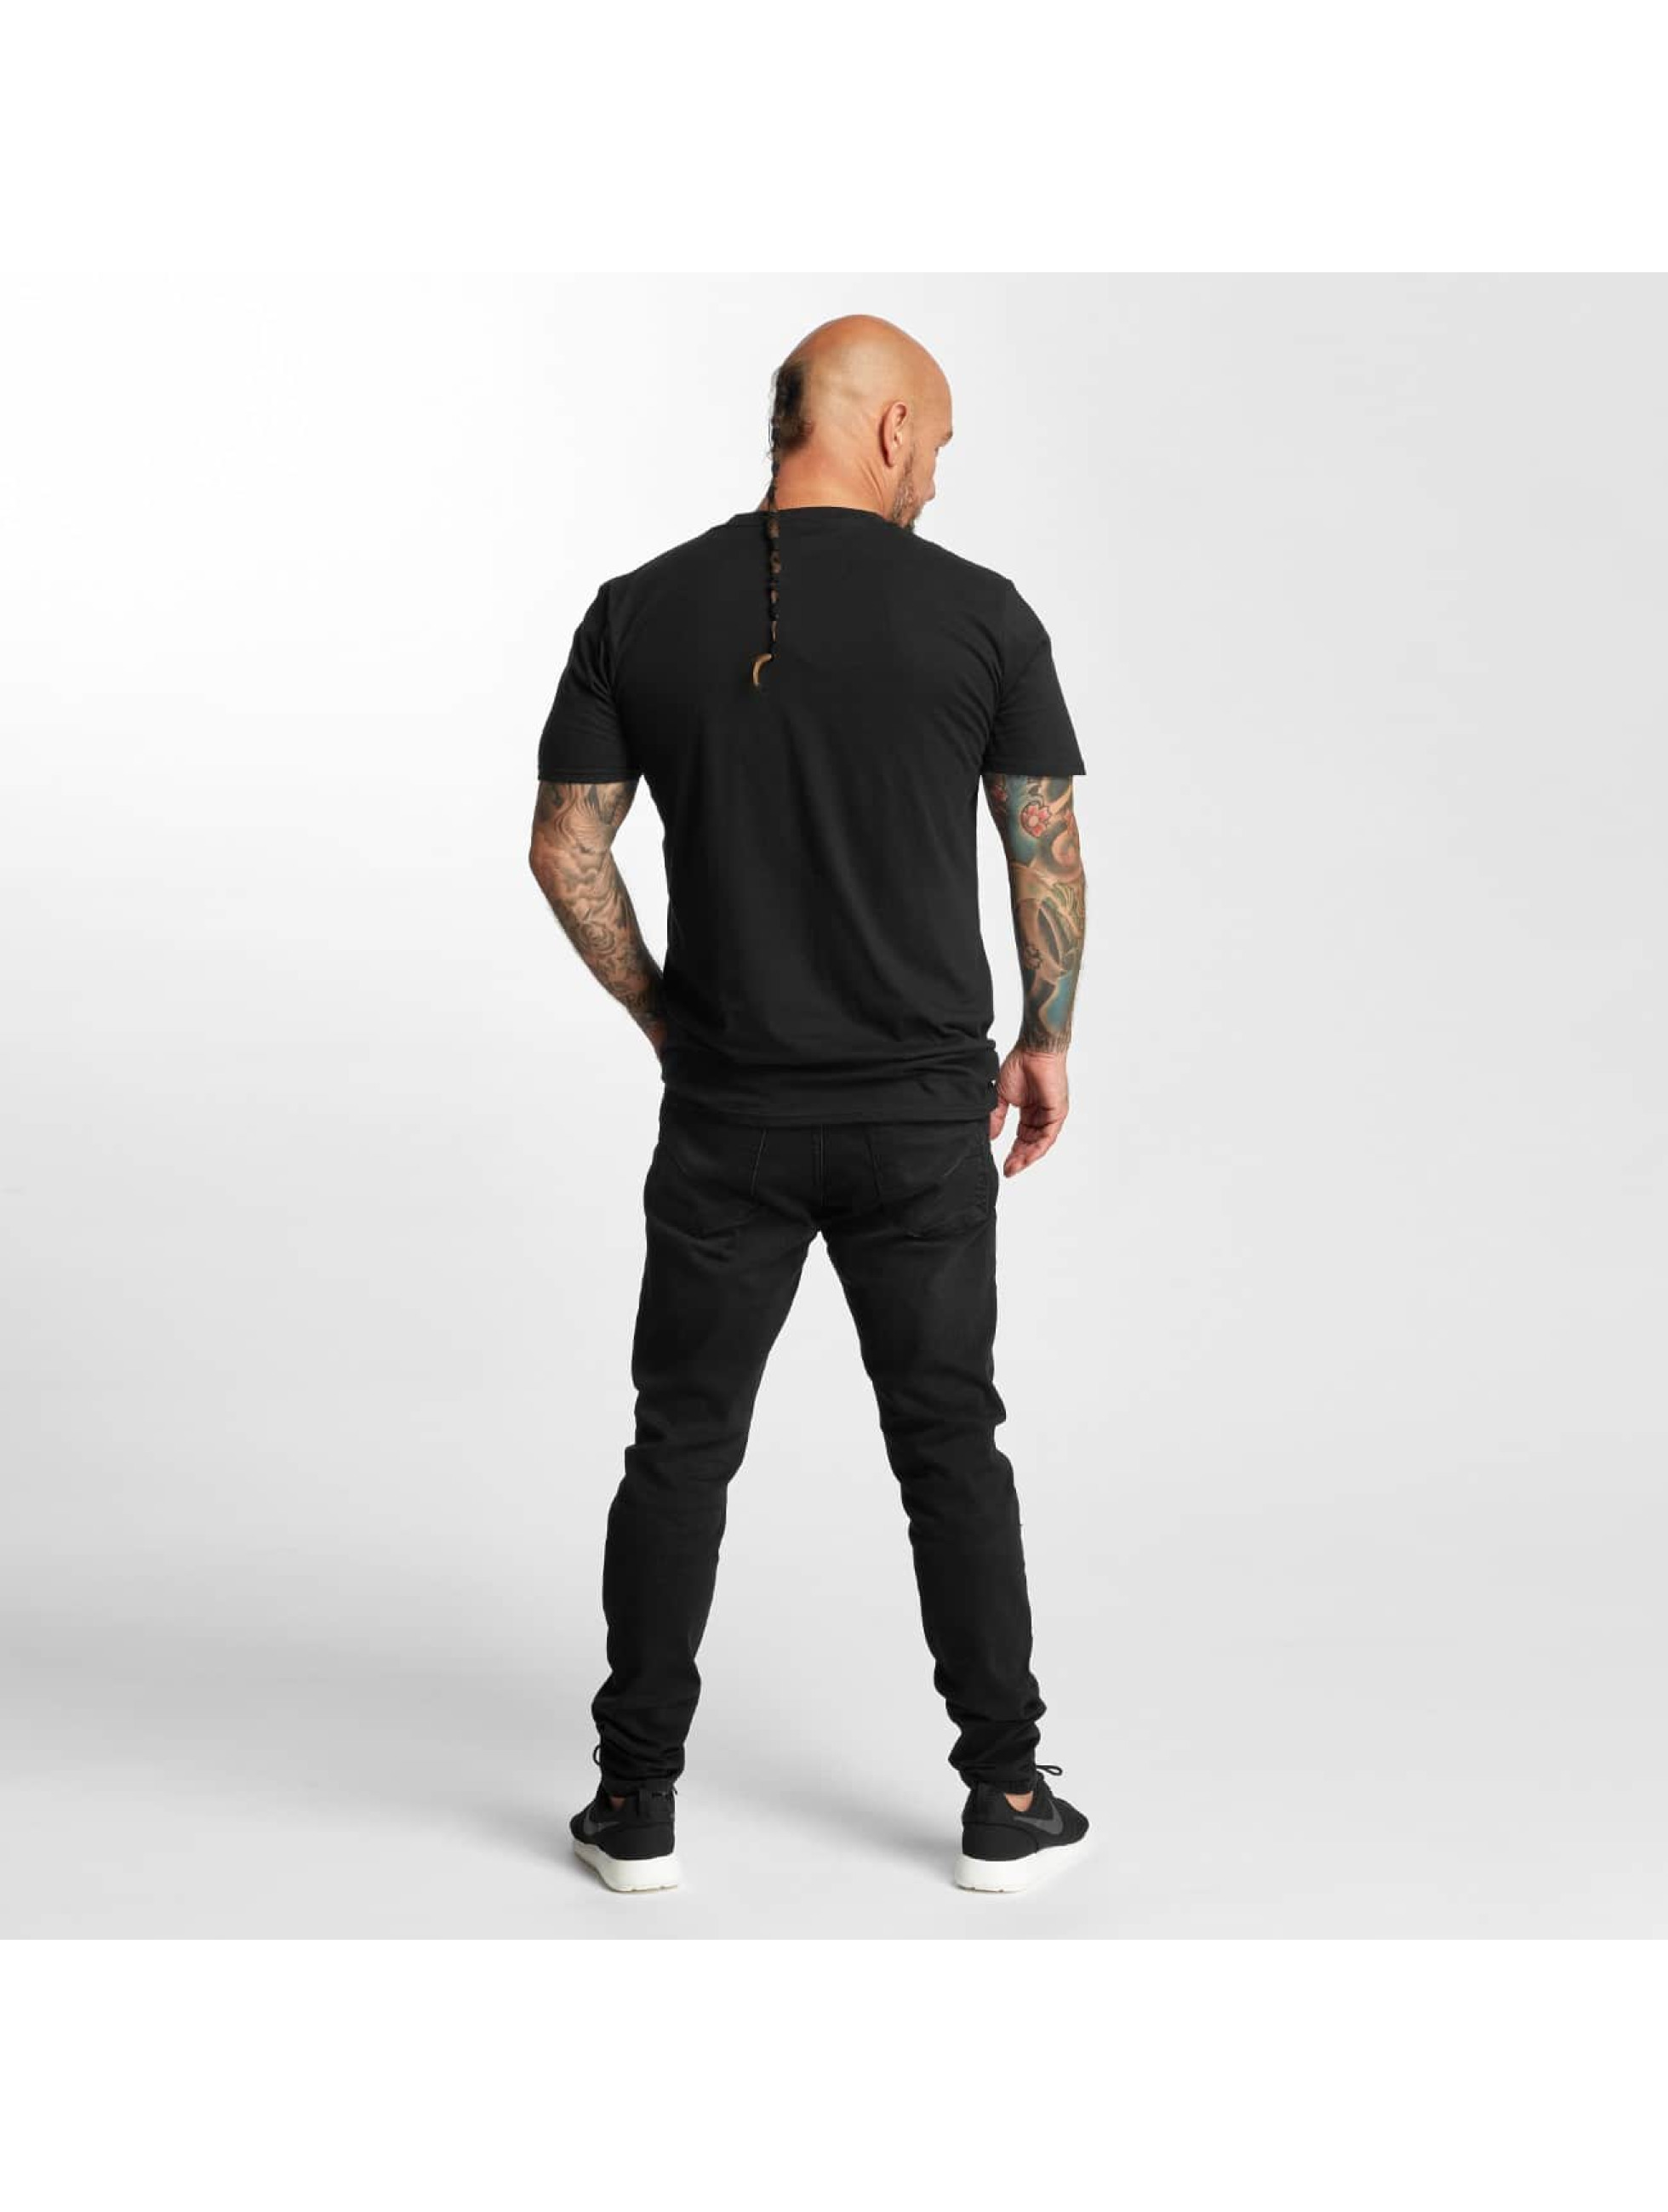 I Love Tattoo T-Shirt WSSWML black